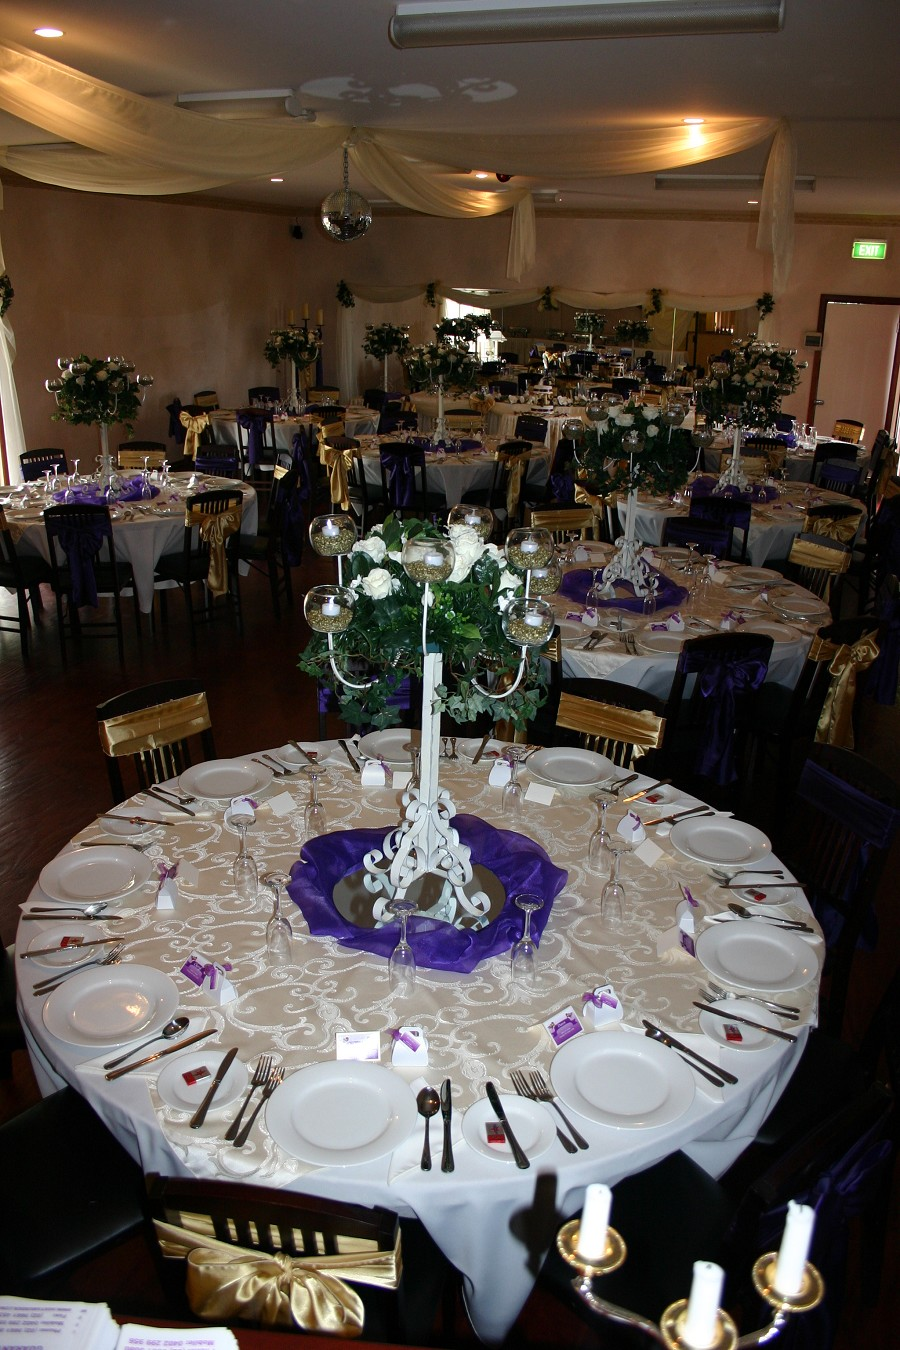 white tablecloths, cheap table linens, lace tablecloths, fitted tablecloths